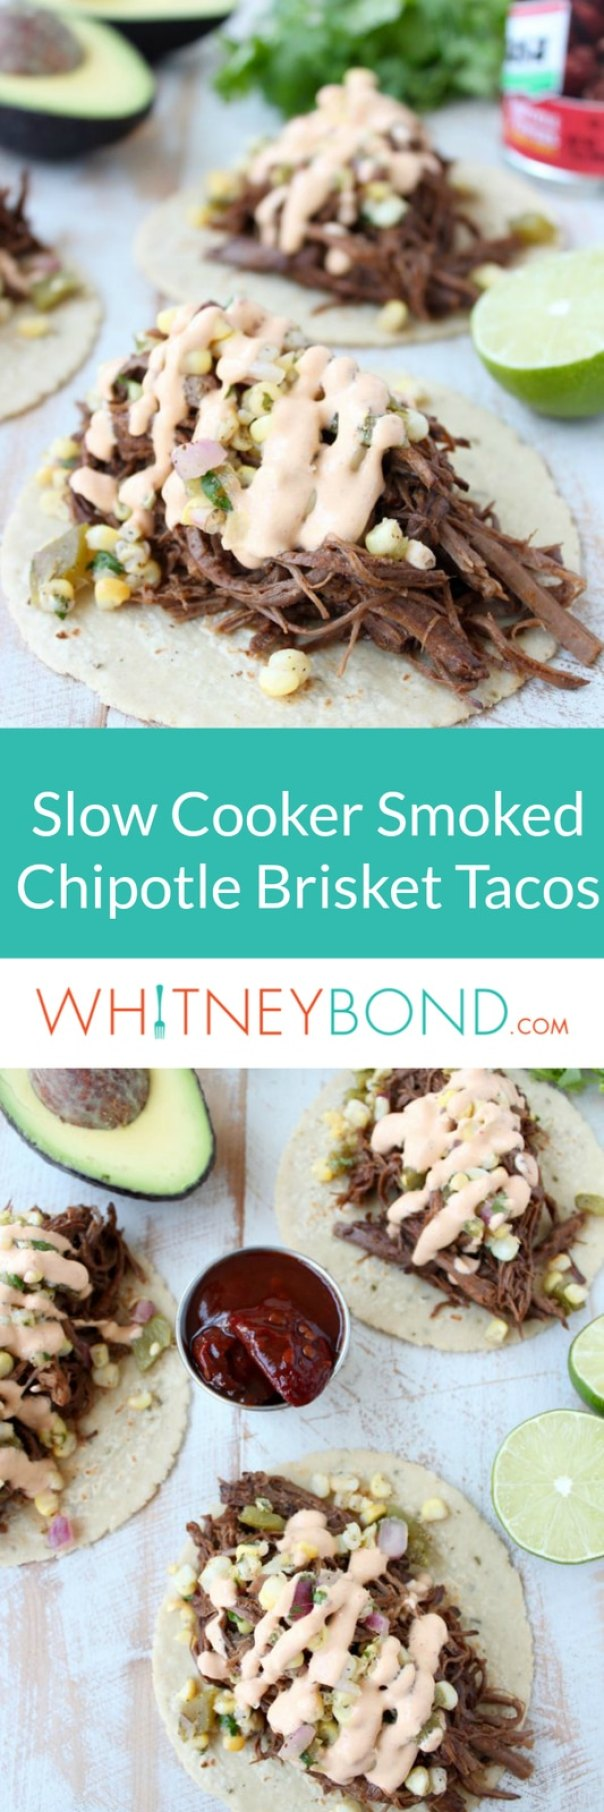 Smoked Chipotle Brisket Tacos Recipe